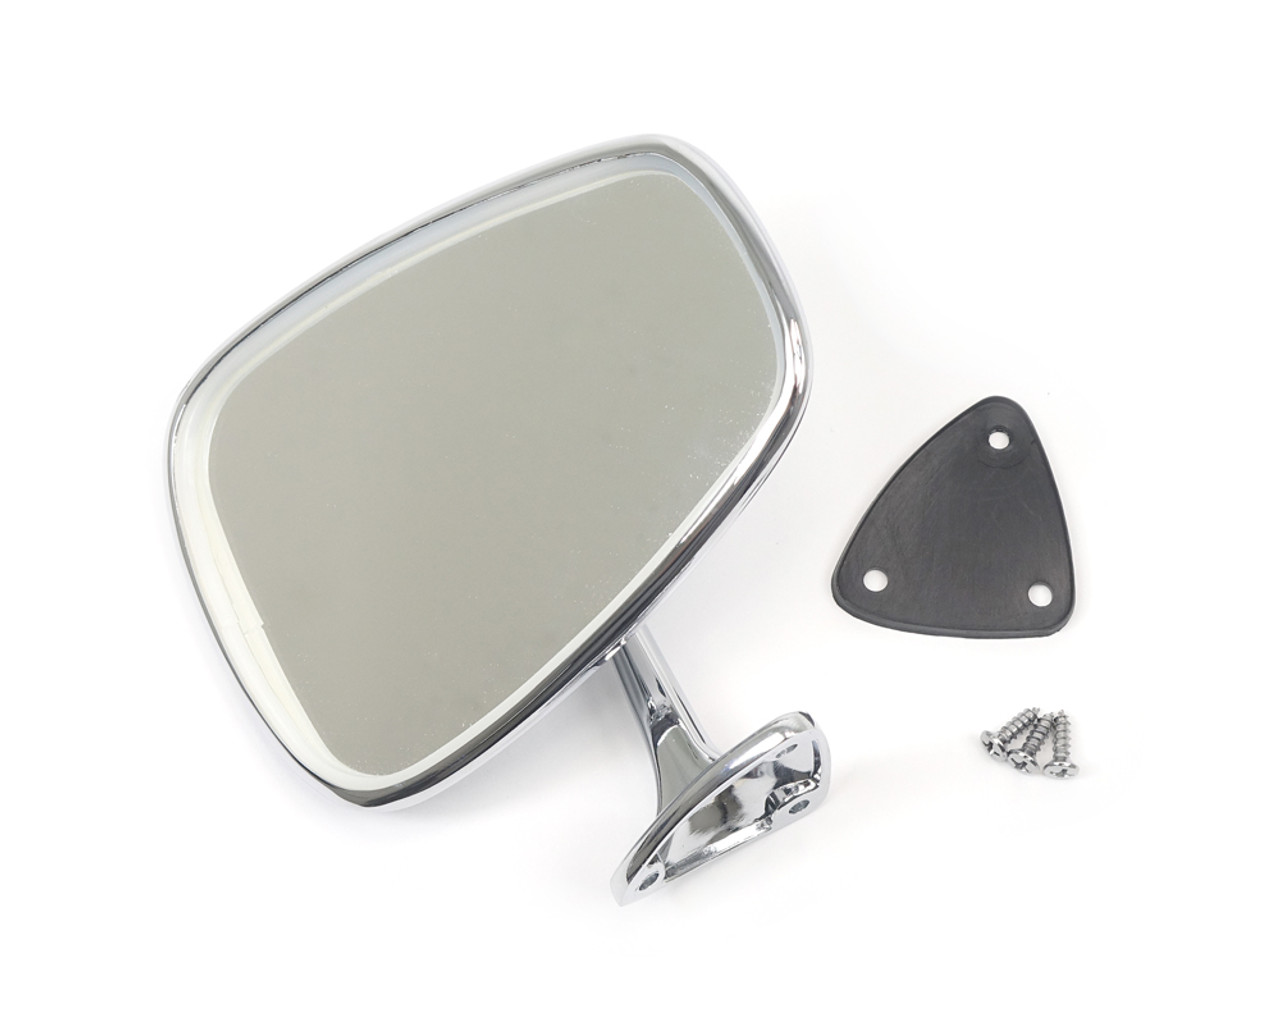 FIAT 124 Vitaloni Chrome Exterior Mirror - 1966-78 (RE6-081) - Auto Ricambi